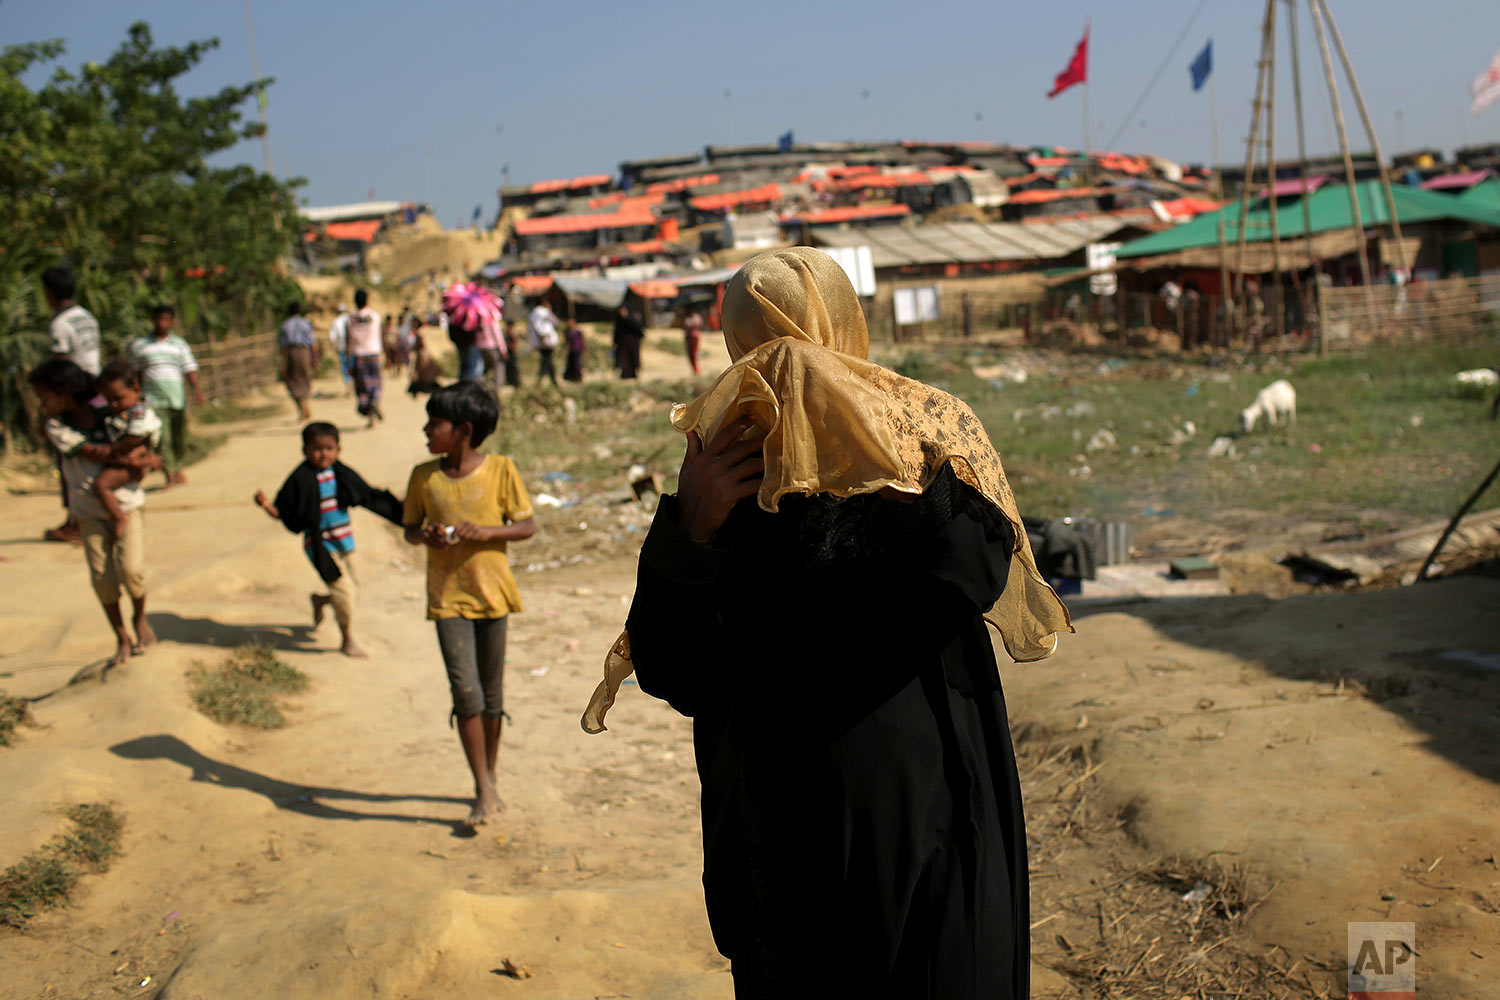 A Rohingya Muslim woman covers her face from the afternoon dust and heat as she walks through Jamtoli refugee camp on Monday, Nov. 27, 2017, in Bangladesh. Since late August, more than 620,000 Rohingya have fled Myanmar's Rakhine state into neighboring Bangladesh, where they are living in squalid refugee camps. (AP Photo/Wong Maye-E)